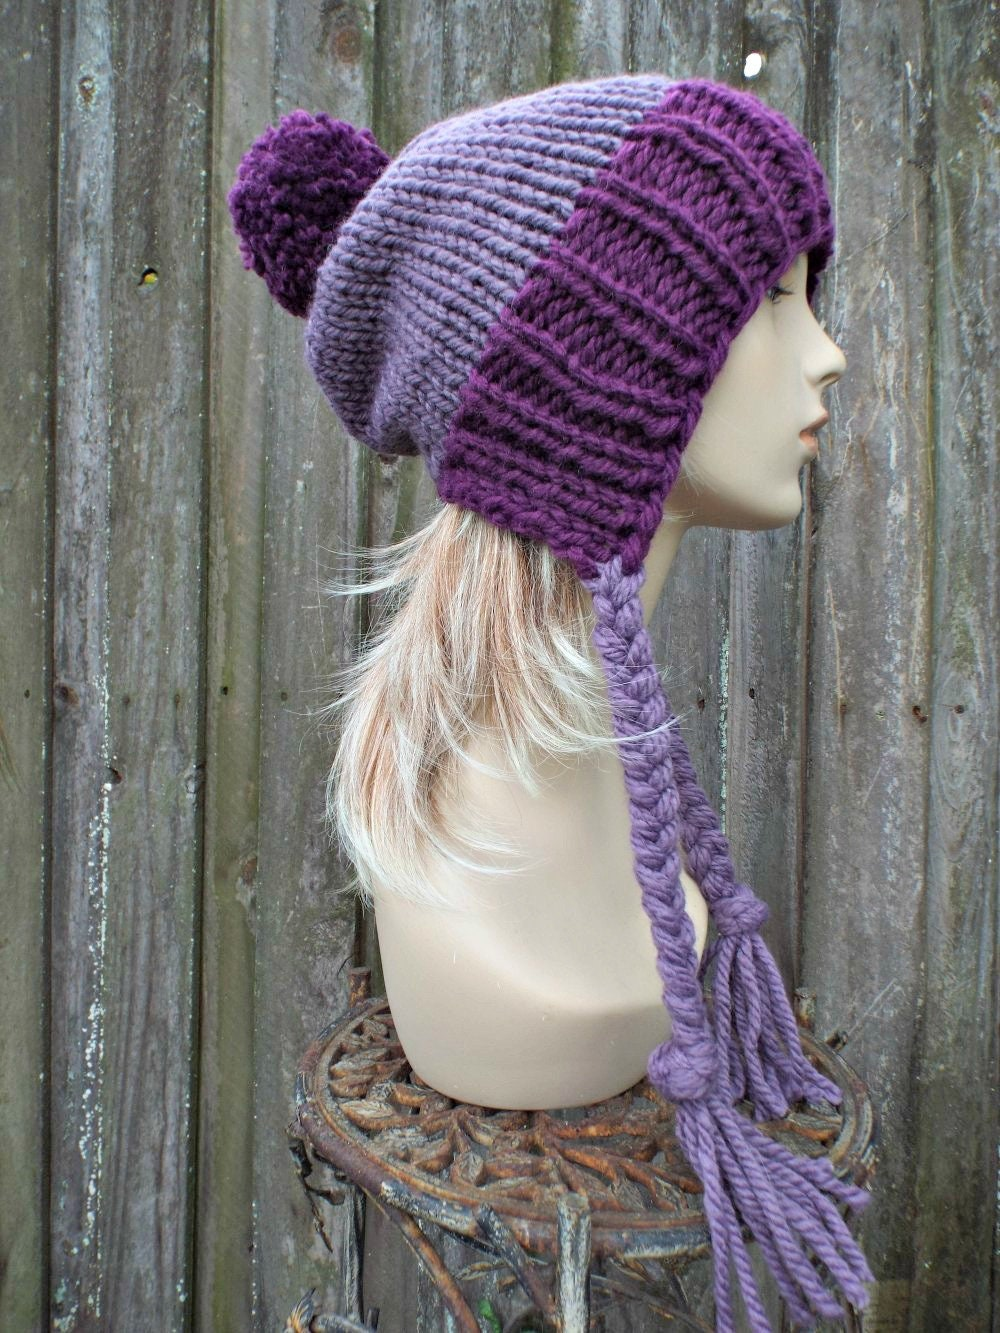 893fb8493f0 Chunky Knit Hat Womens Purple Pom Pom Hat - Slouchy Ear Flap Beanie With  Braided Ties Warm Winter Hat - Charlotte - READY TO SHIP